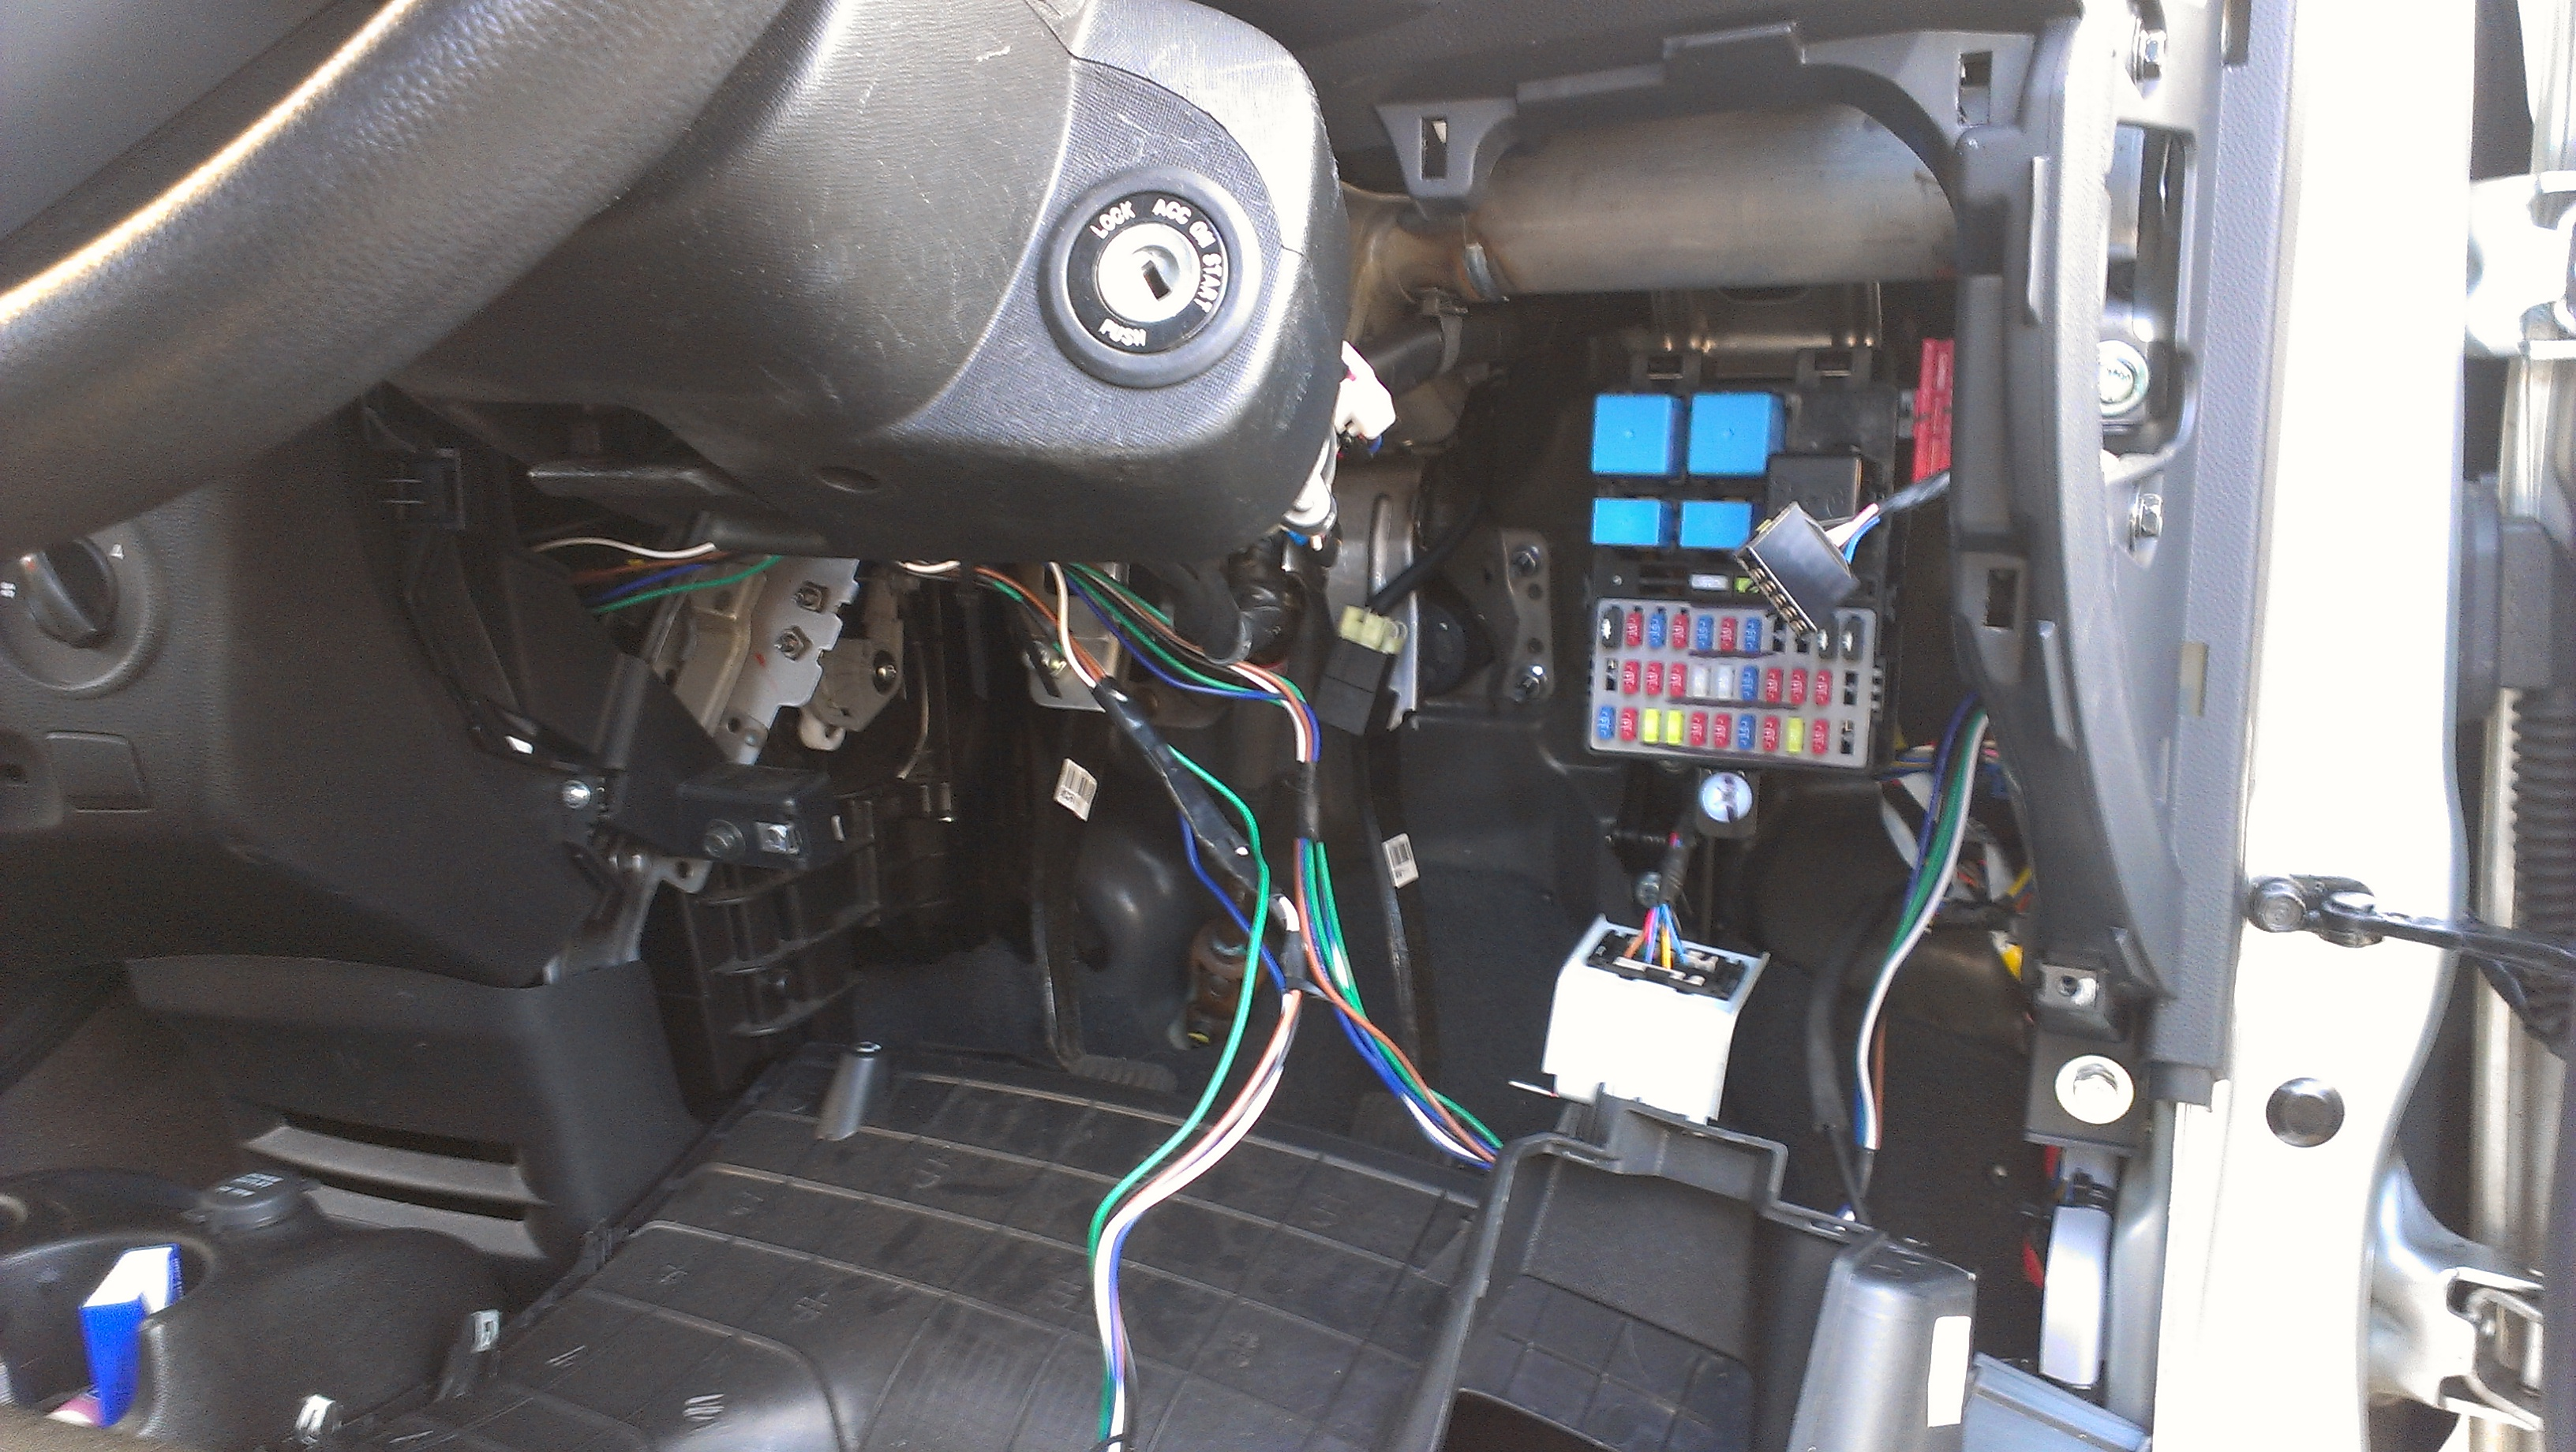 kia sportage canister purge valve location get free kia ceed 2014 fuse box diagram kia ceed 2009 fuse box location